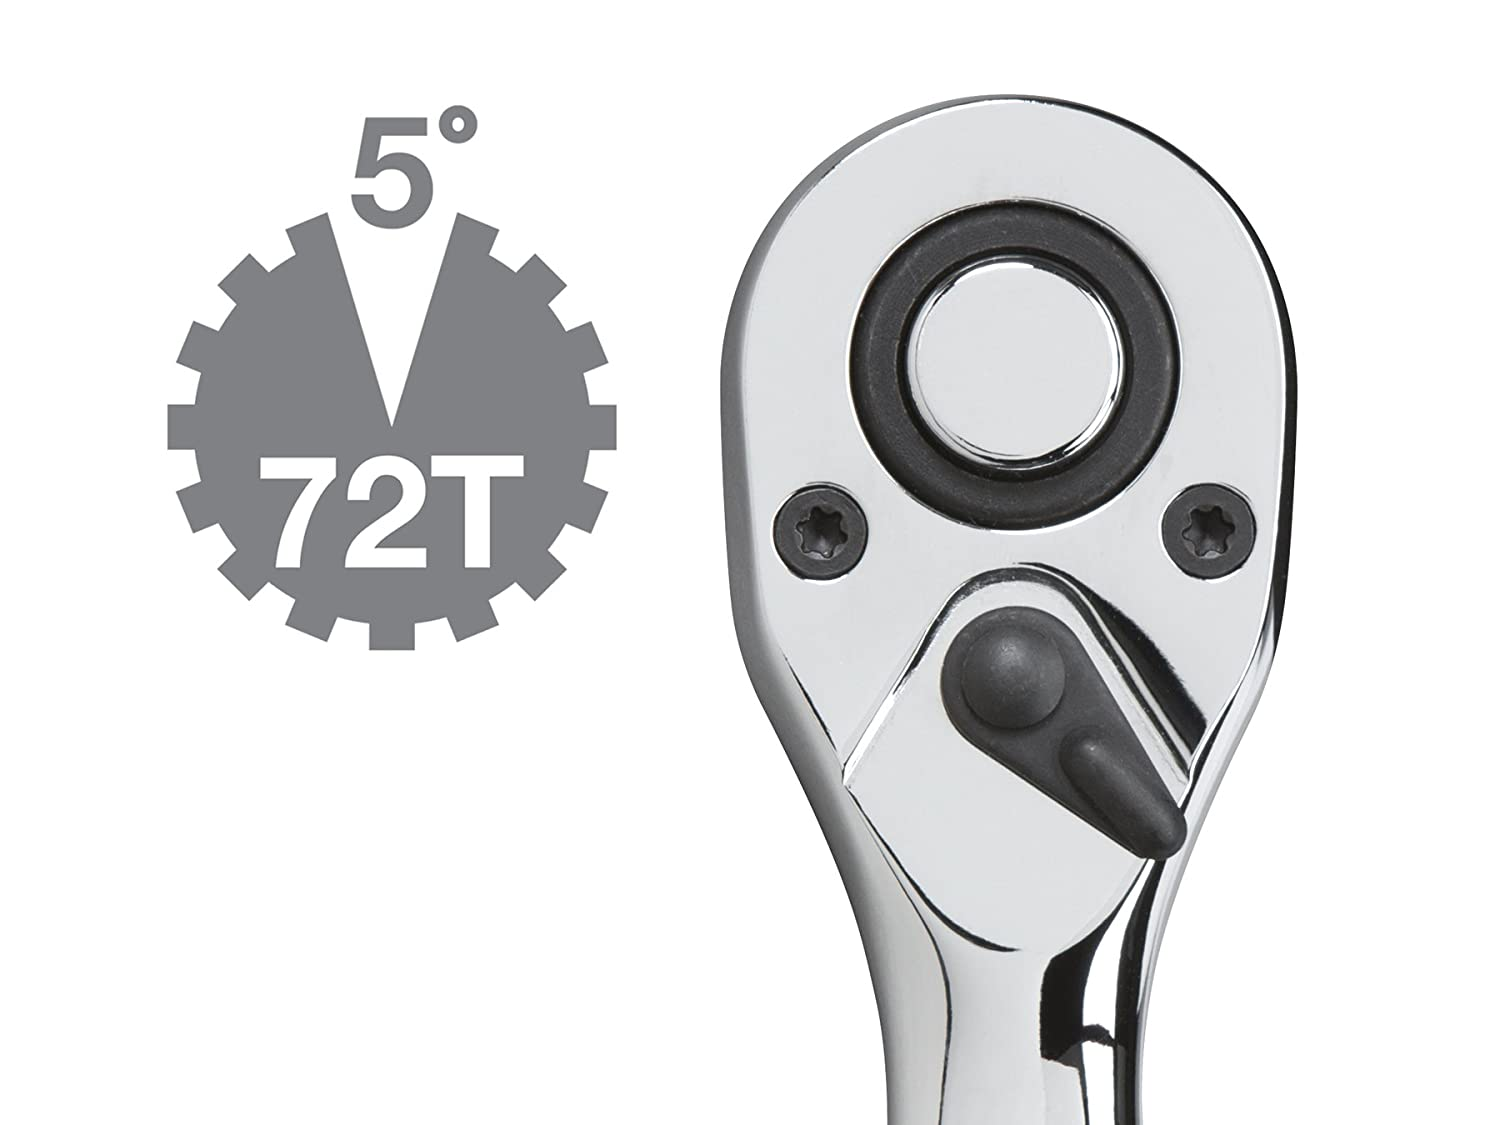 1486 TEKTON 1//4-Inch Drive by 5-Inch Quick-Release Offset Ratchet 72-Tooth Oval Head